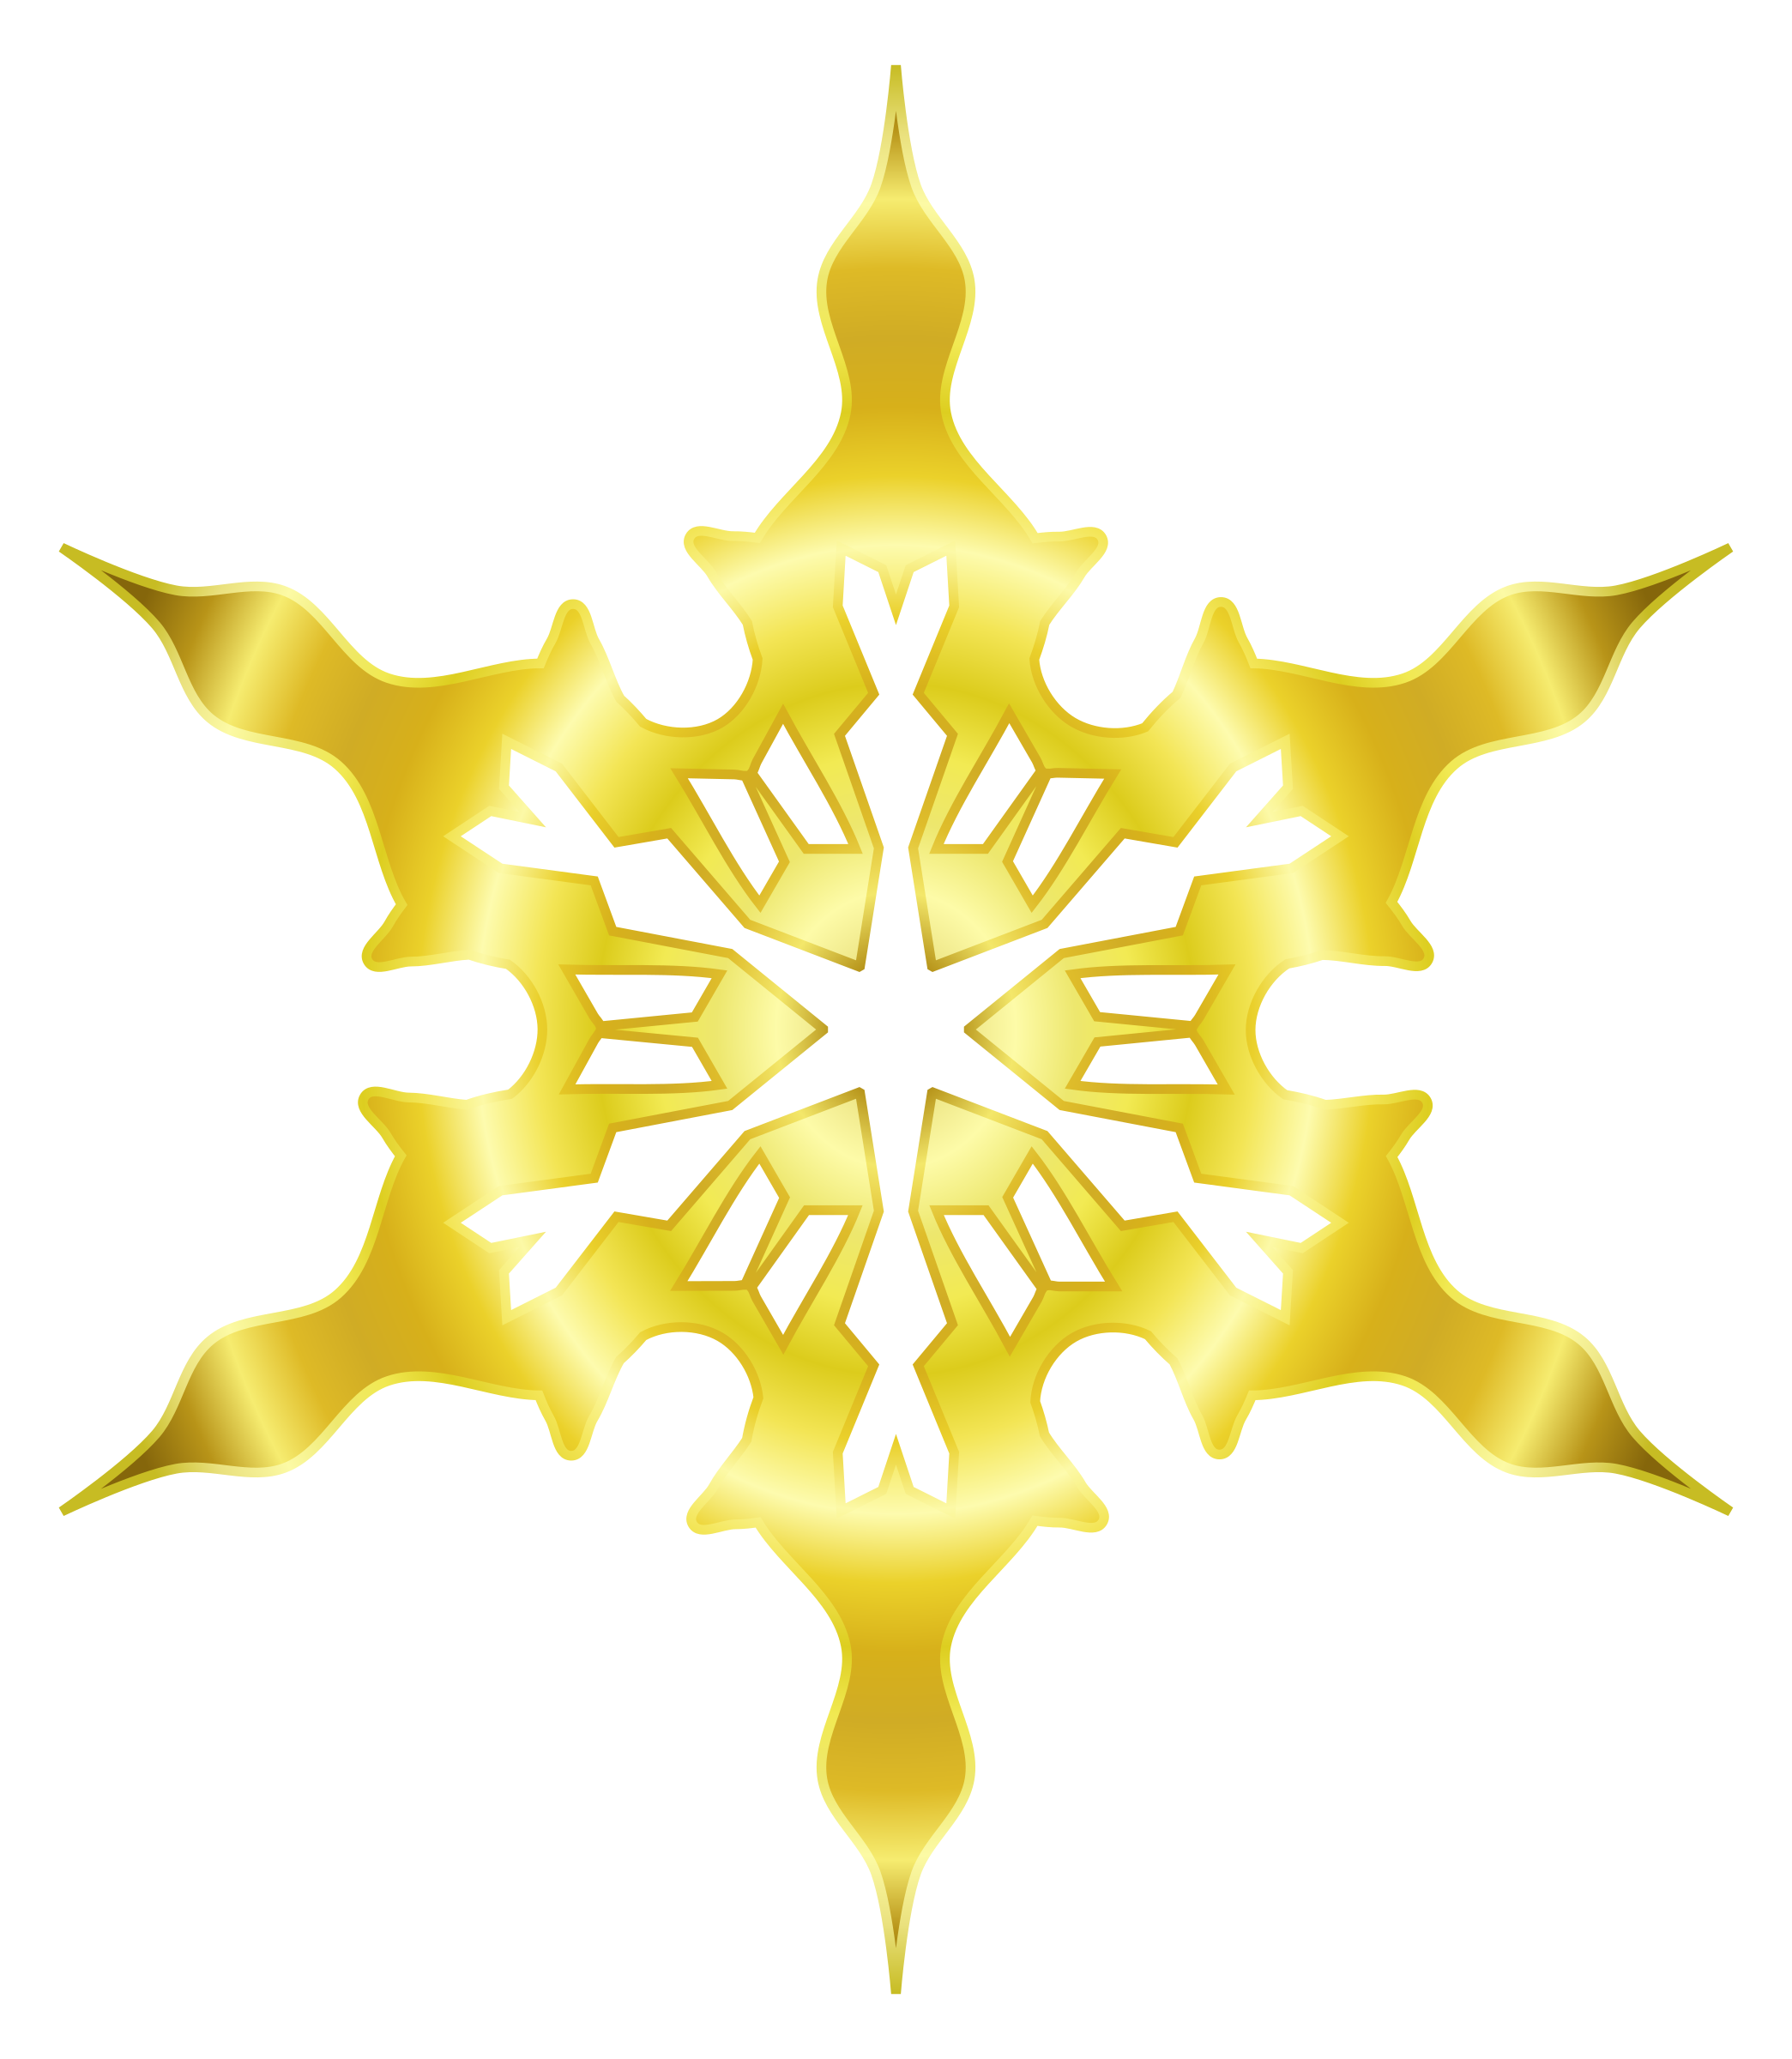 Snowflake clipart for microsoft office png royalty free stock Clipart - Snowflake 8 (gold) png royalty free stock